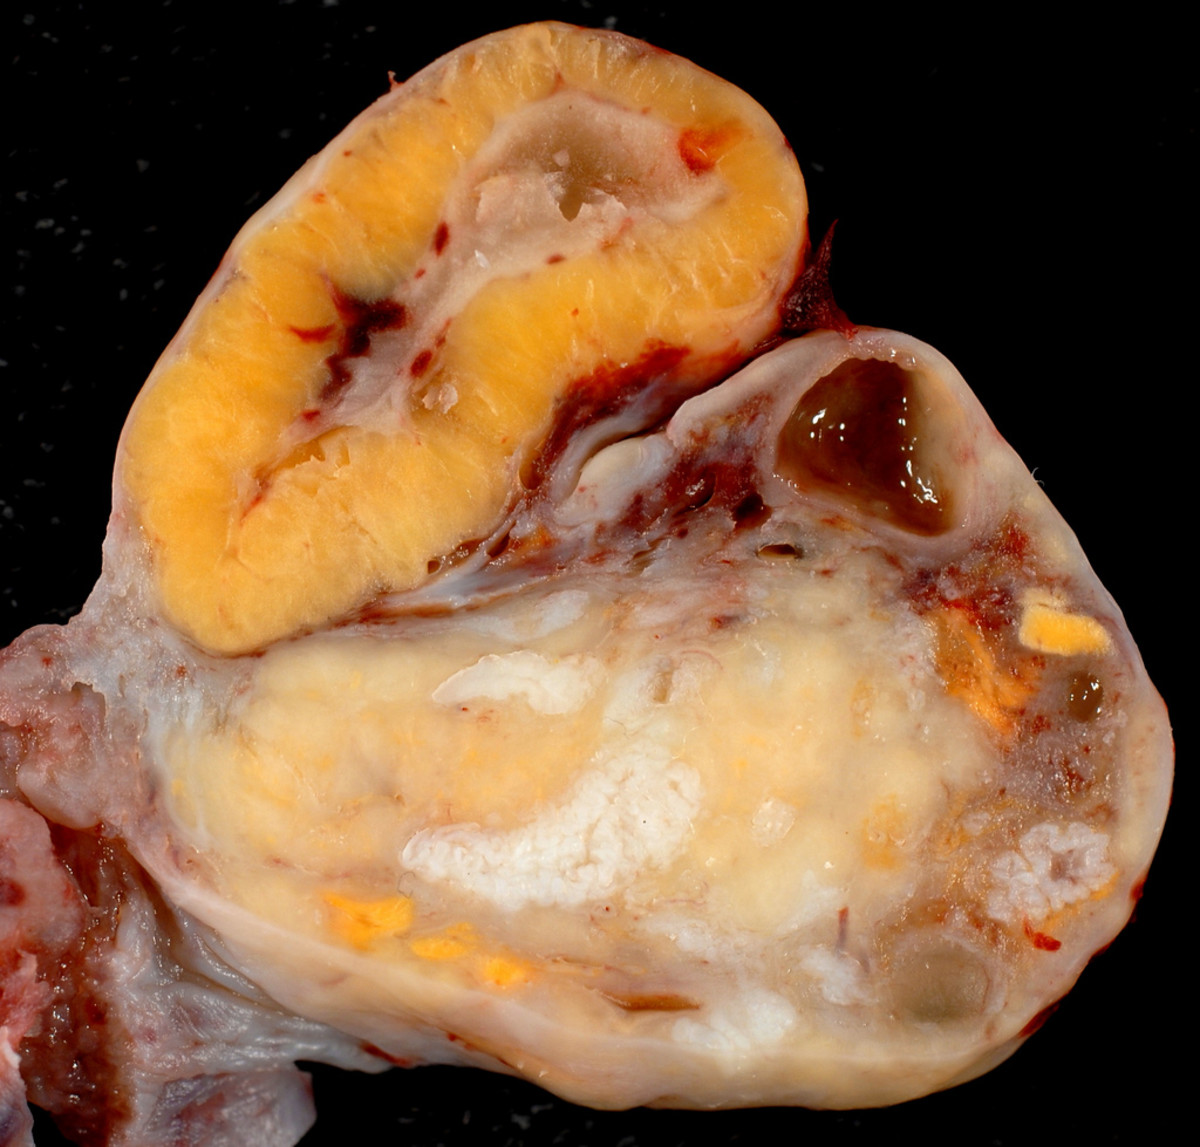 Fully developed Corpus Luteum cyst on the outside of an ovary